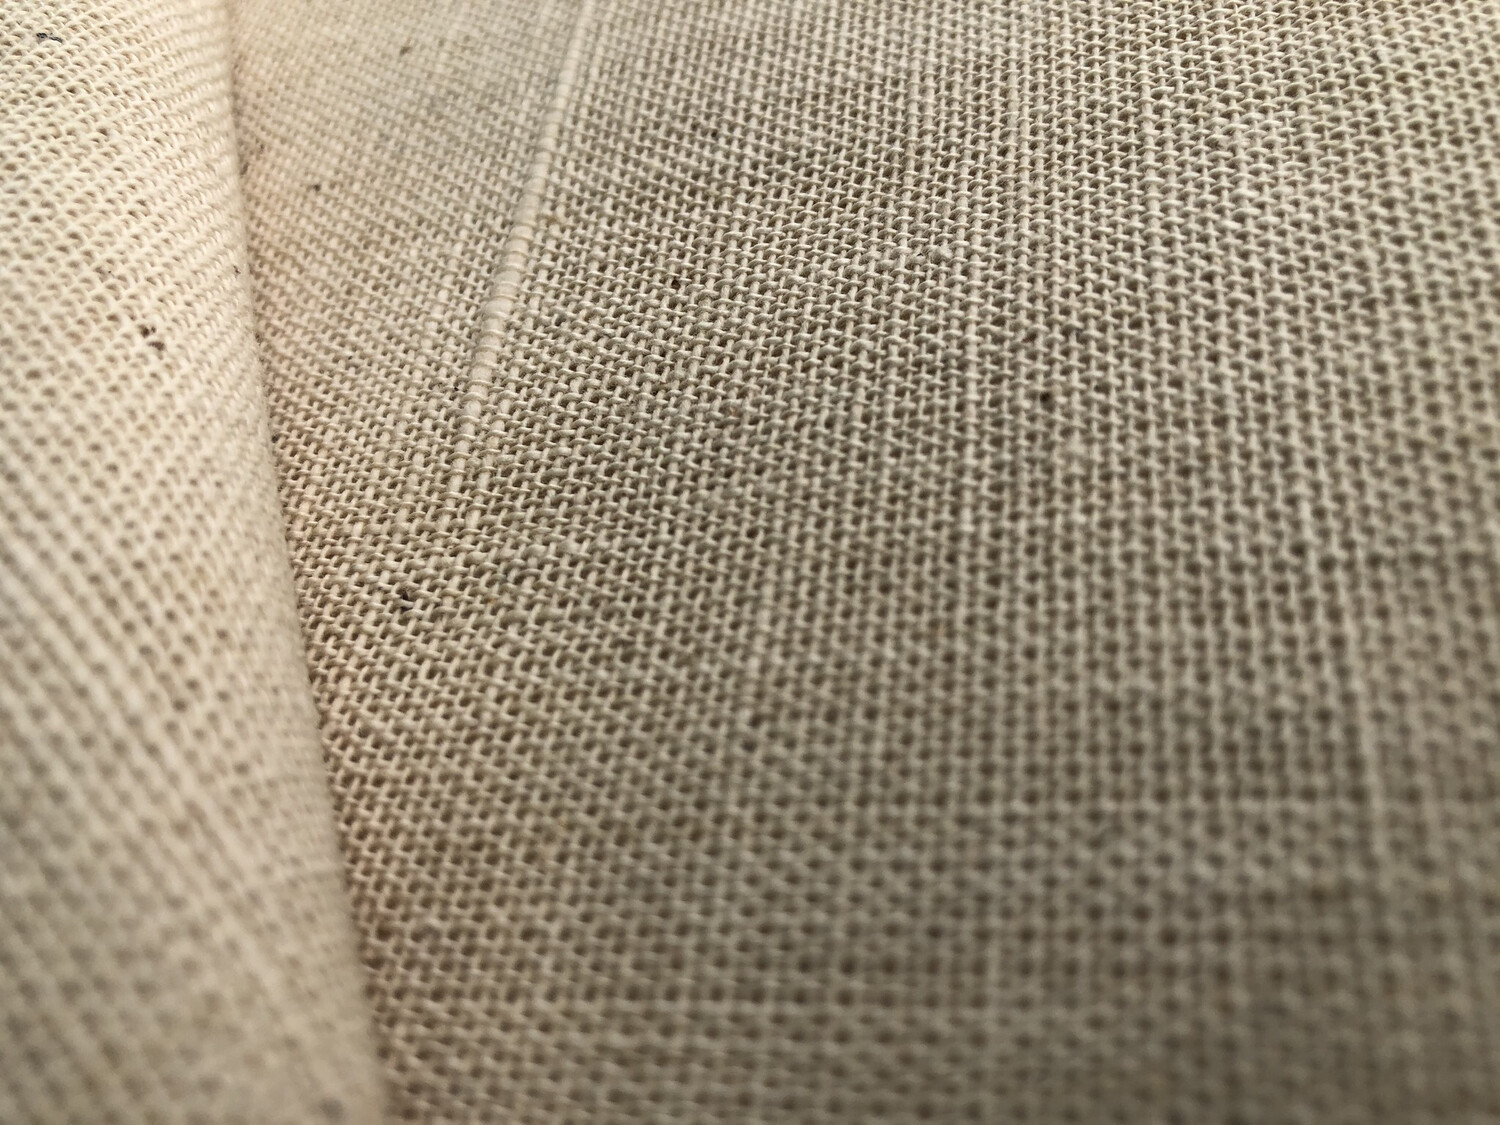 Hand Spun Hand Woven 20 Count Cotton  Fabric